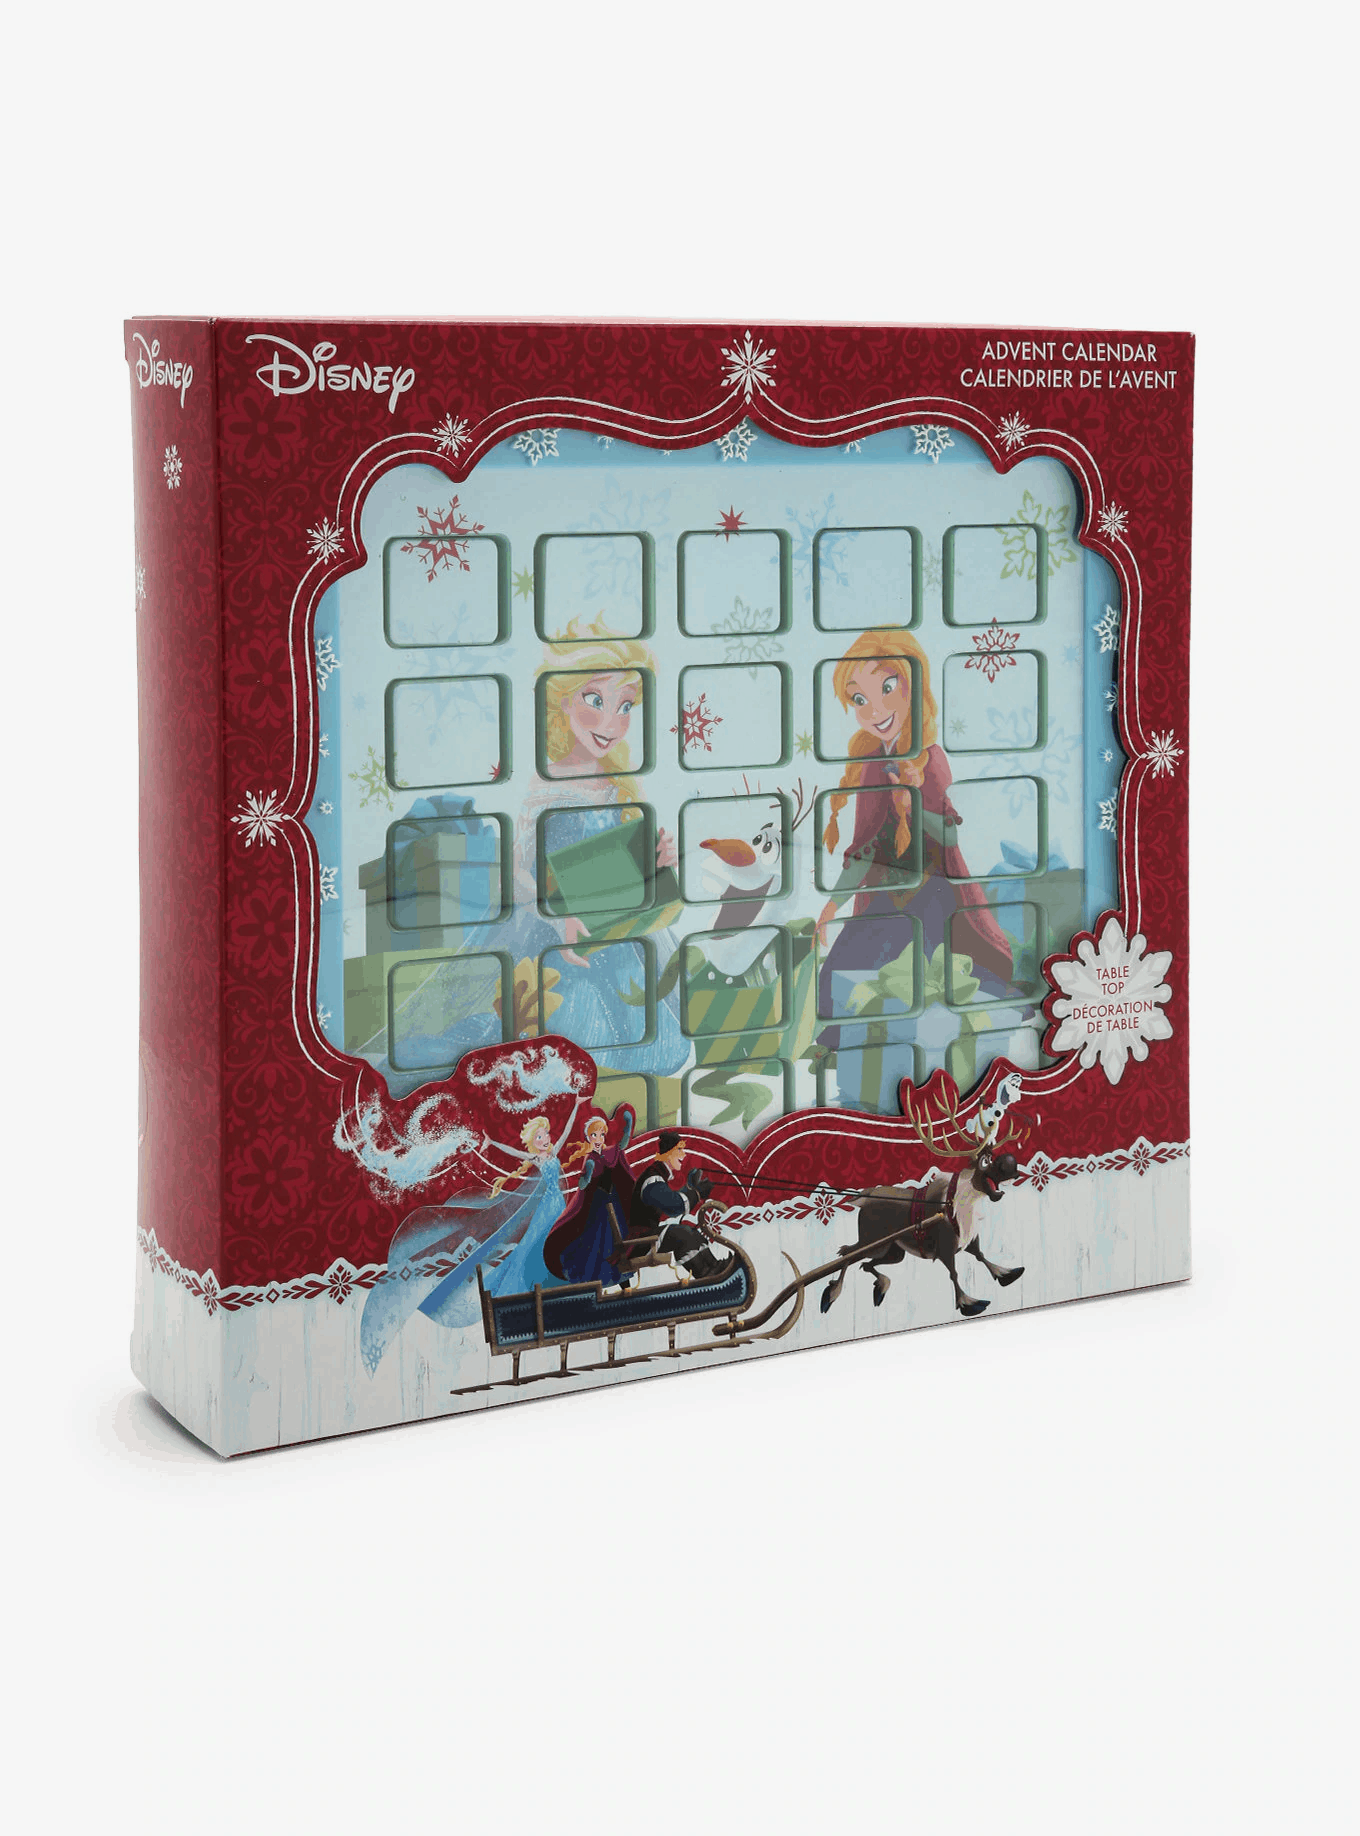 2019 Hot Topic Disney Frozen Advent Calendar Available Now!